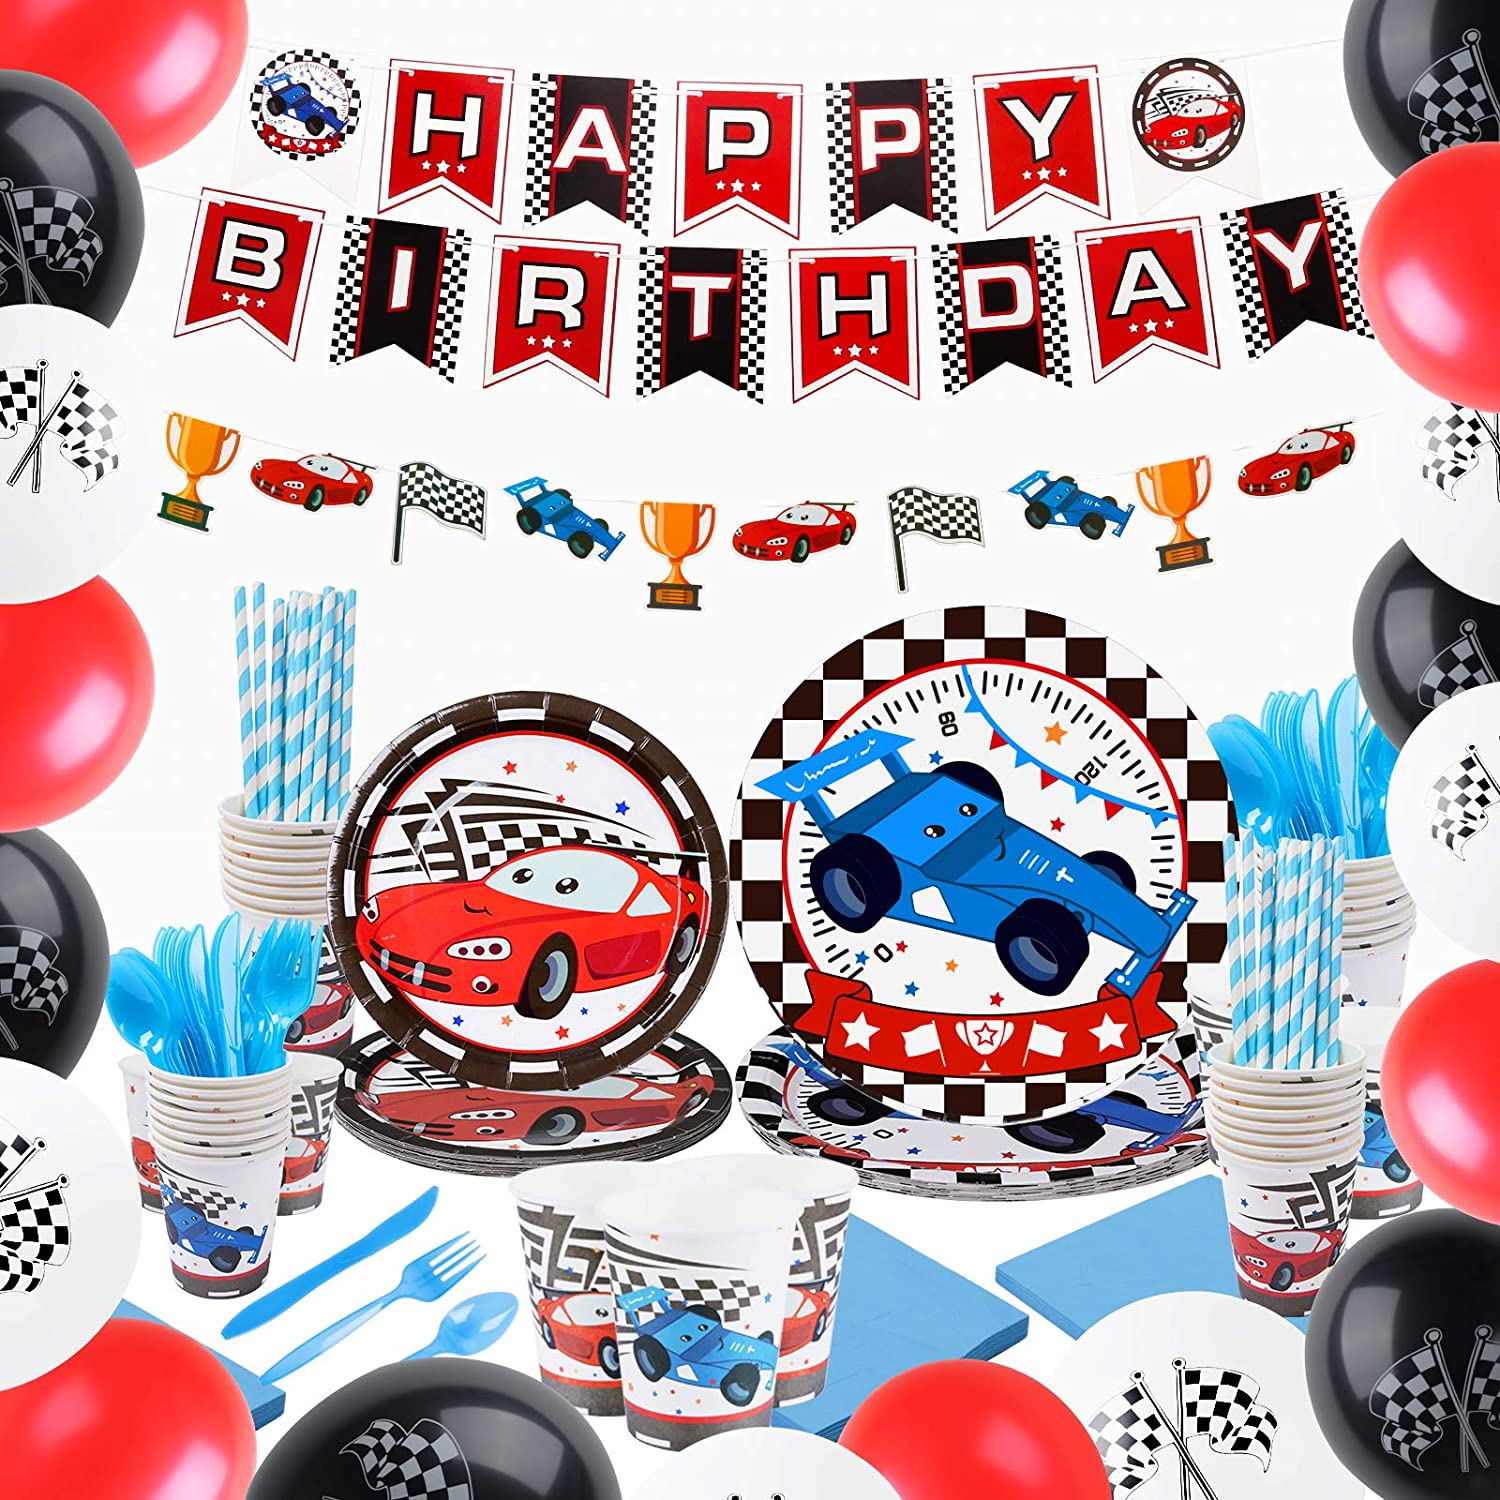 Racing Car Party Supplies Set Race Car Party Supplies Birthday Decorations for Boys Banner Balloons Plates Cups Napkins Tableware Chequered Flag Wheel Themed Birthday Party Kits Serves 16 Guests